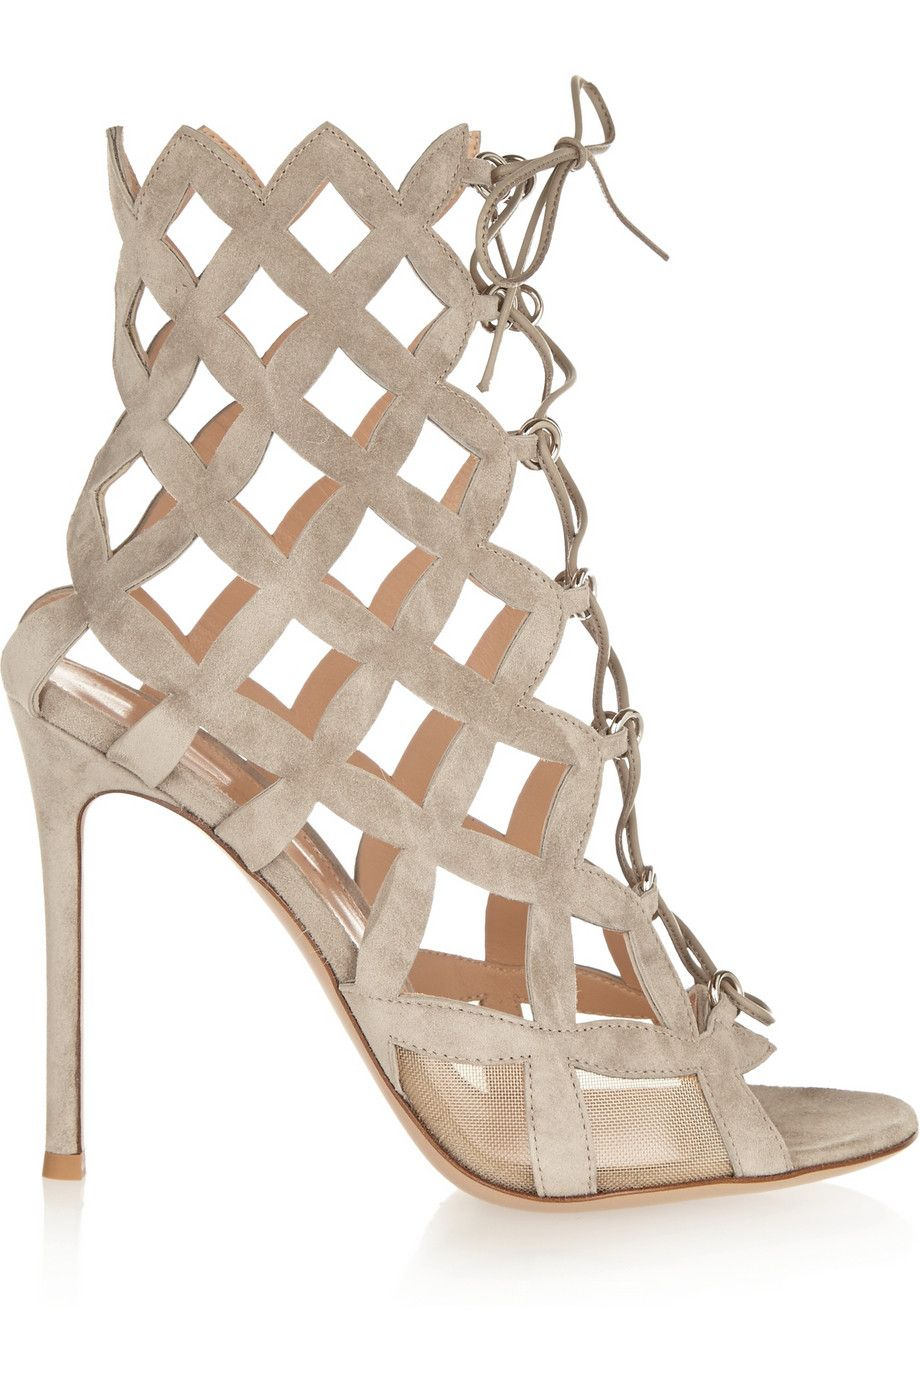 """Gianvito Rossi Cutout Suede Sandals, $1,595; &lt;a target=""""_blank"""" href=""""http://www.net-a-porter.com/product/496496/Gianvito_Rossi/cutout-suede-sandals""""&gt;net-a-porter.com&lt;/a&gt;   <!--EndFragment-->"""